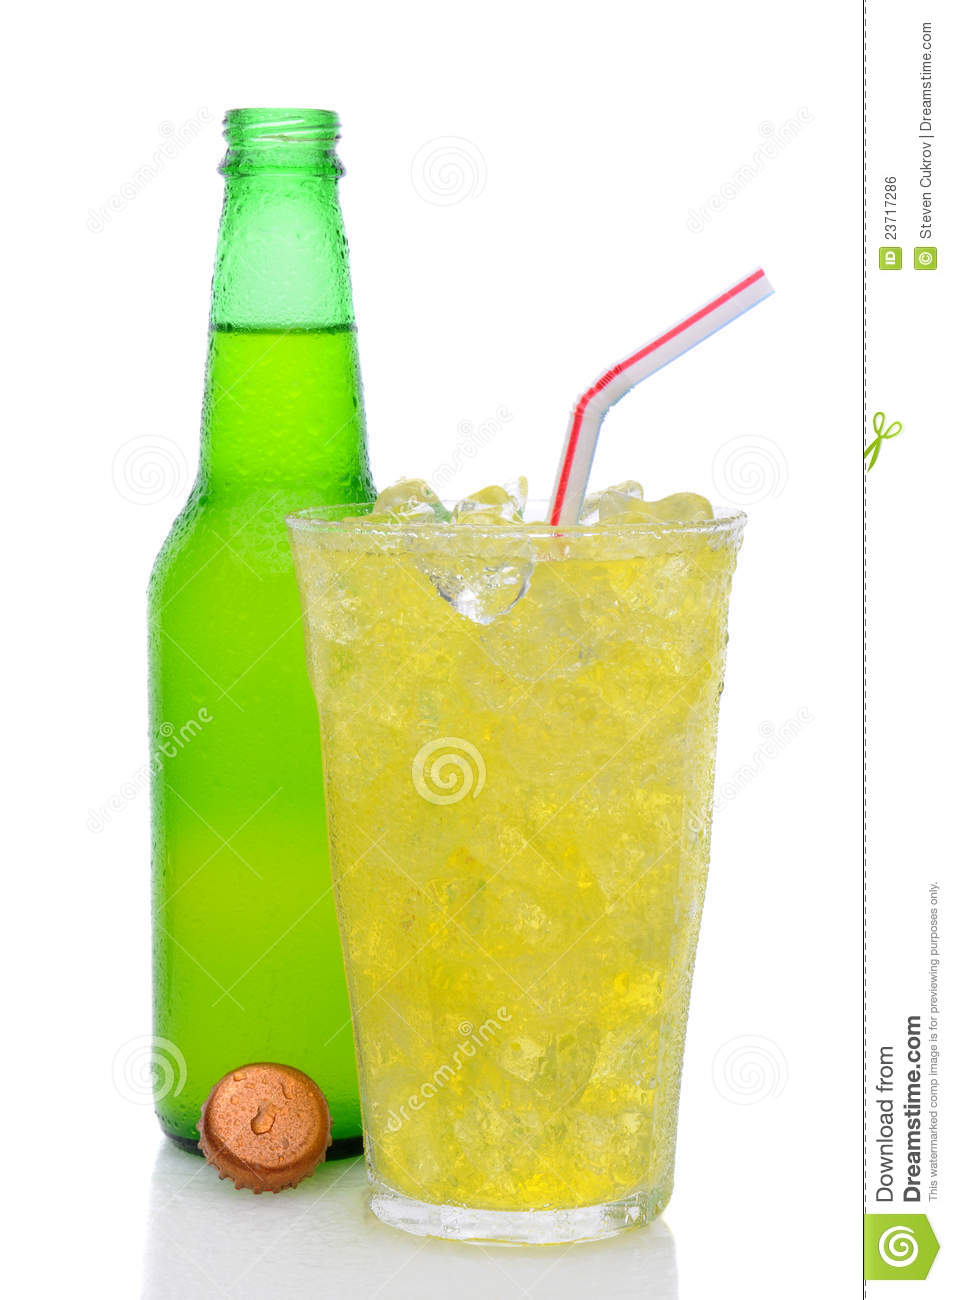 pop soda map with Royalty Free Stock Image Glass Lemon Lime Soda Drinking Straw Image23717286 on The History Of The Ice Cream Sundae in addition 12200308445 furthermore Monster Energy as well Pop Can also Bottle Coke 500ml 1272673.